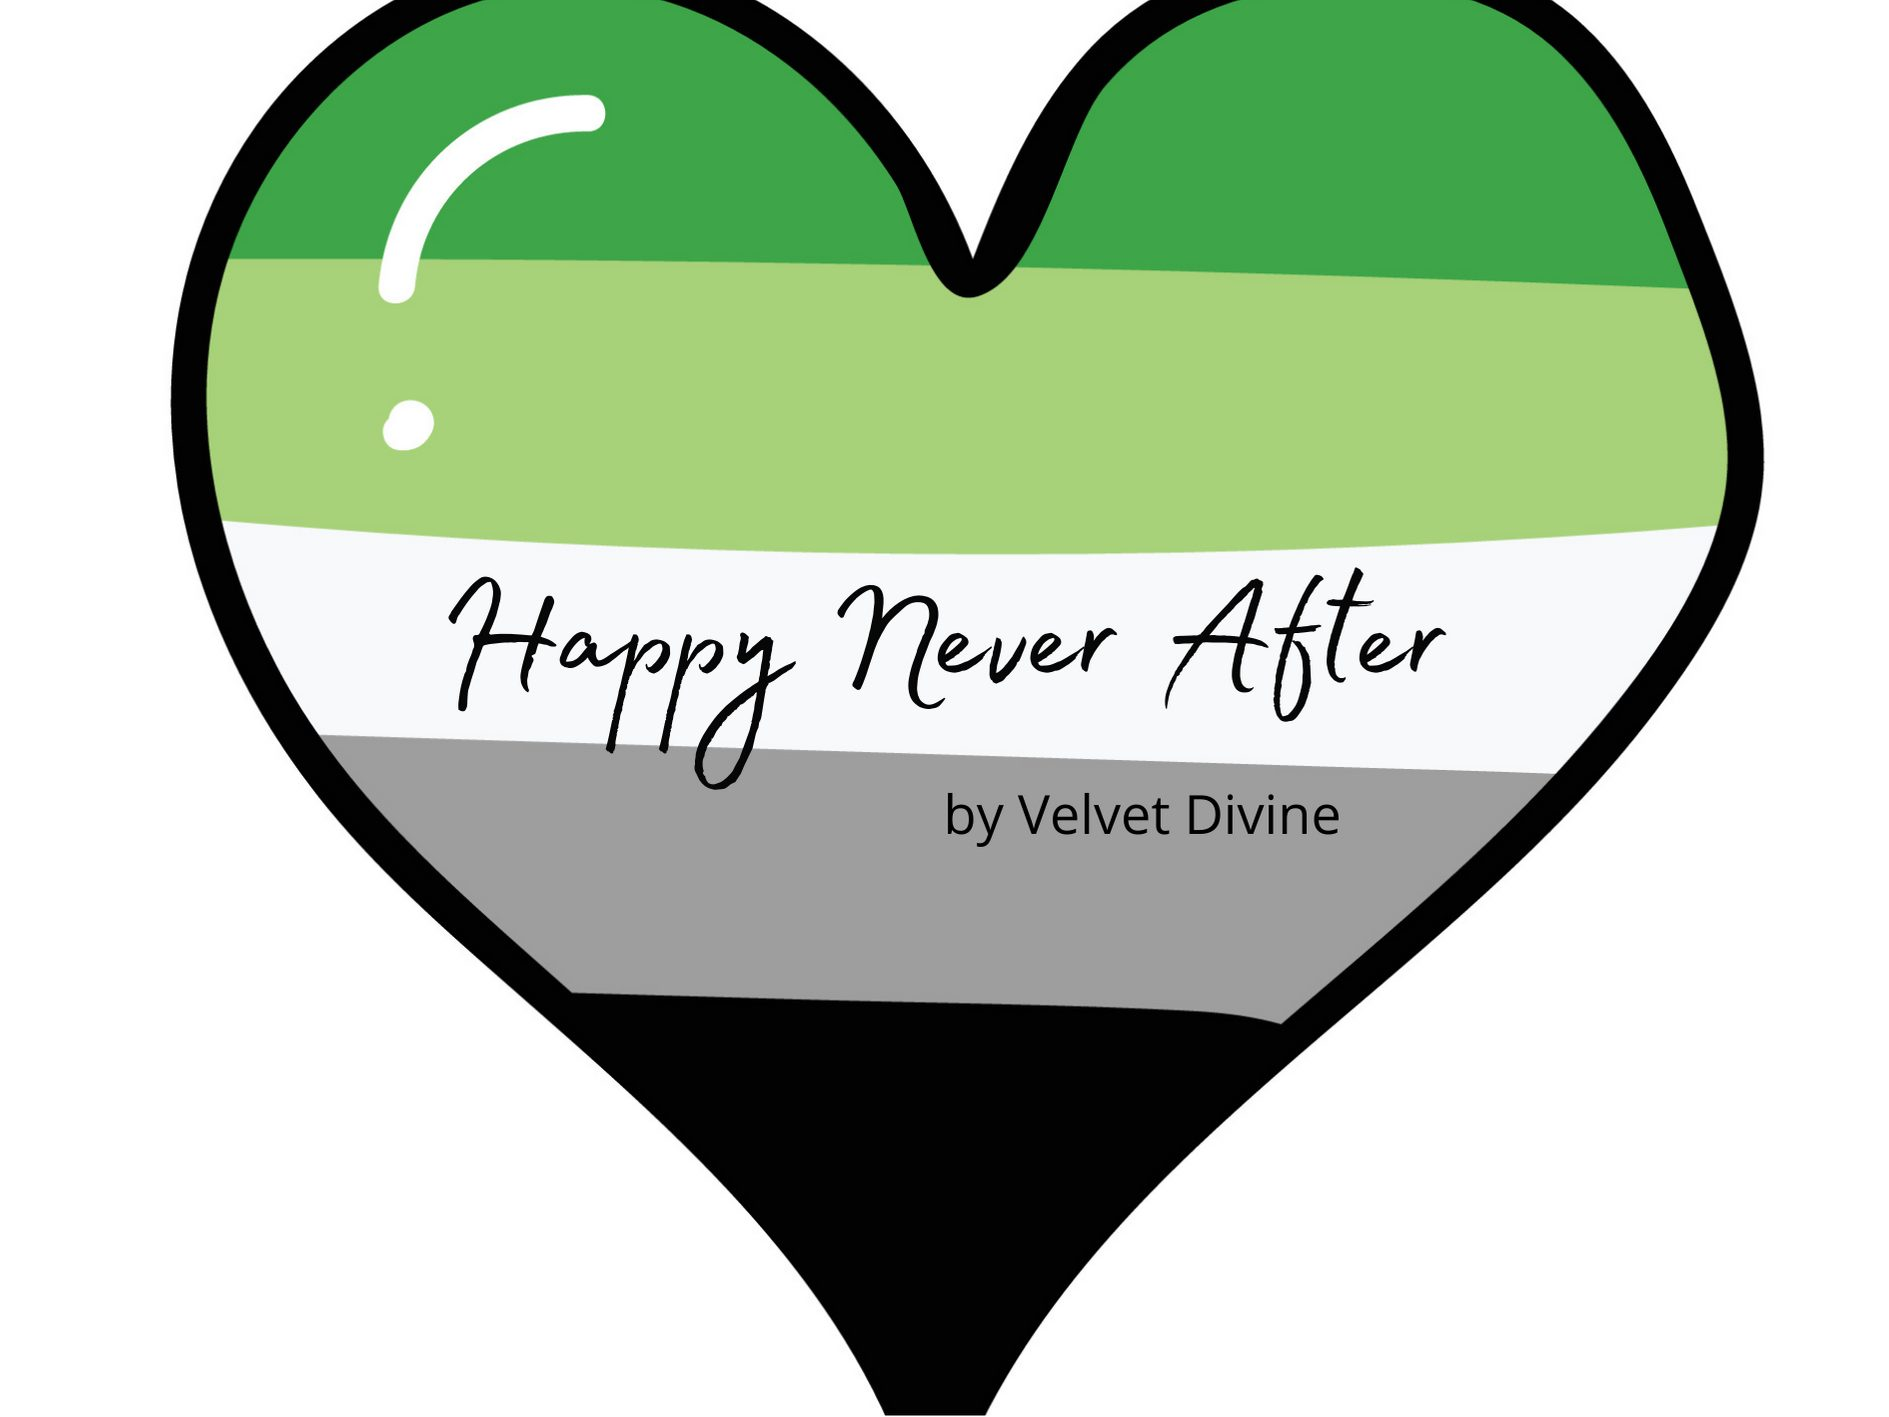 [Guest Post] Happy Never After by Velvet Divine